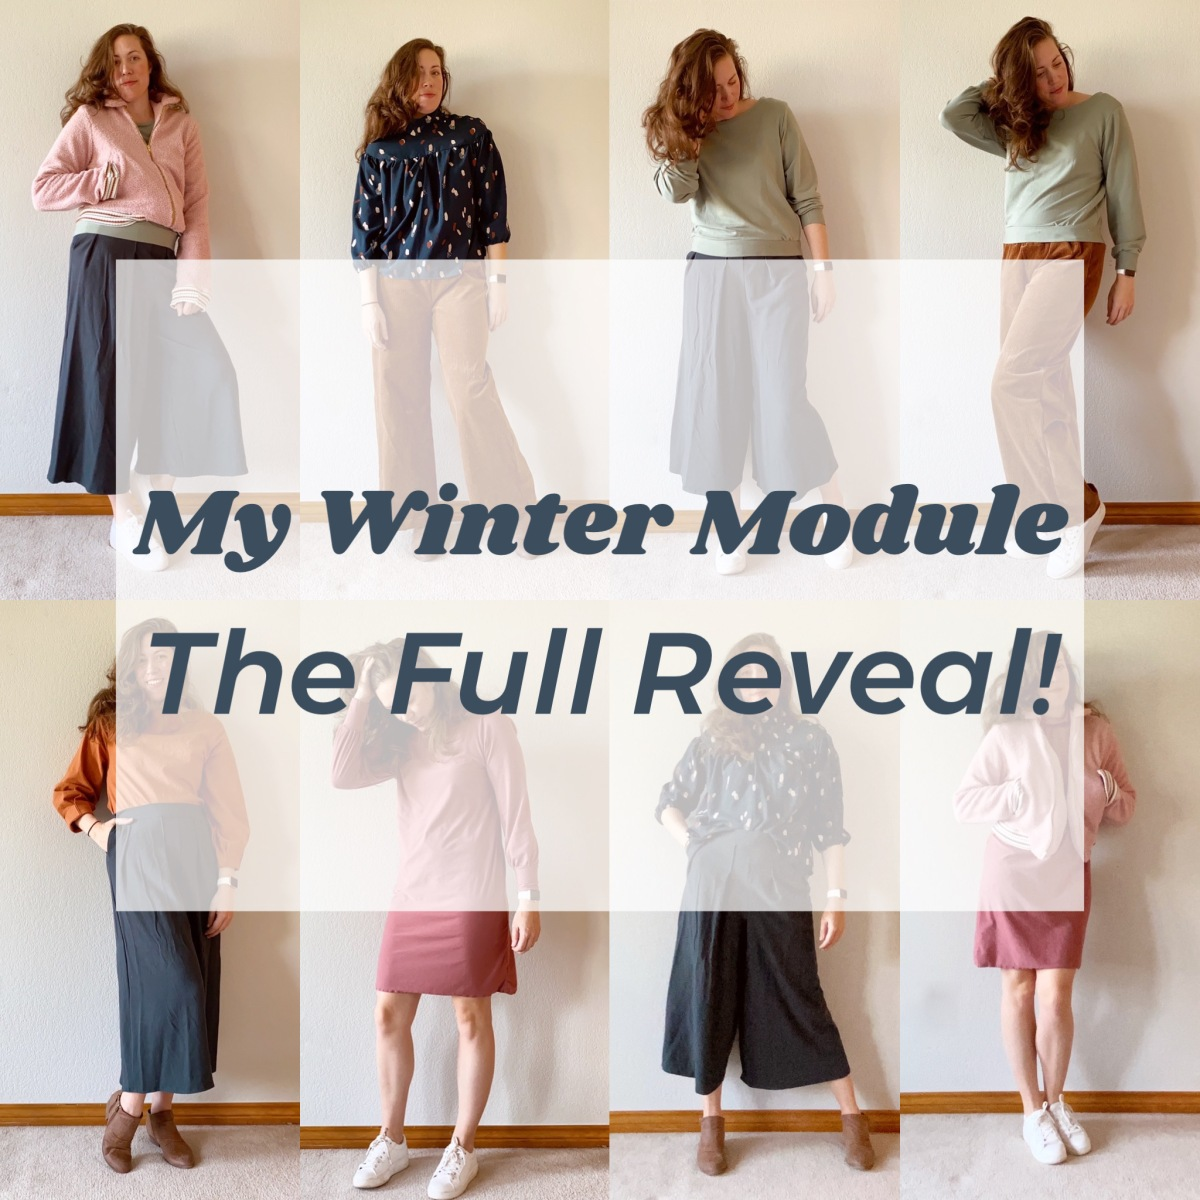 My Winter Module/// The Full Reveal